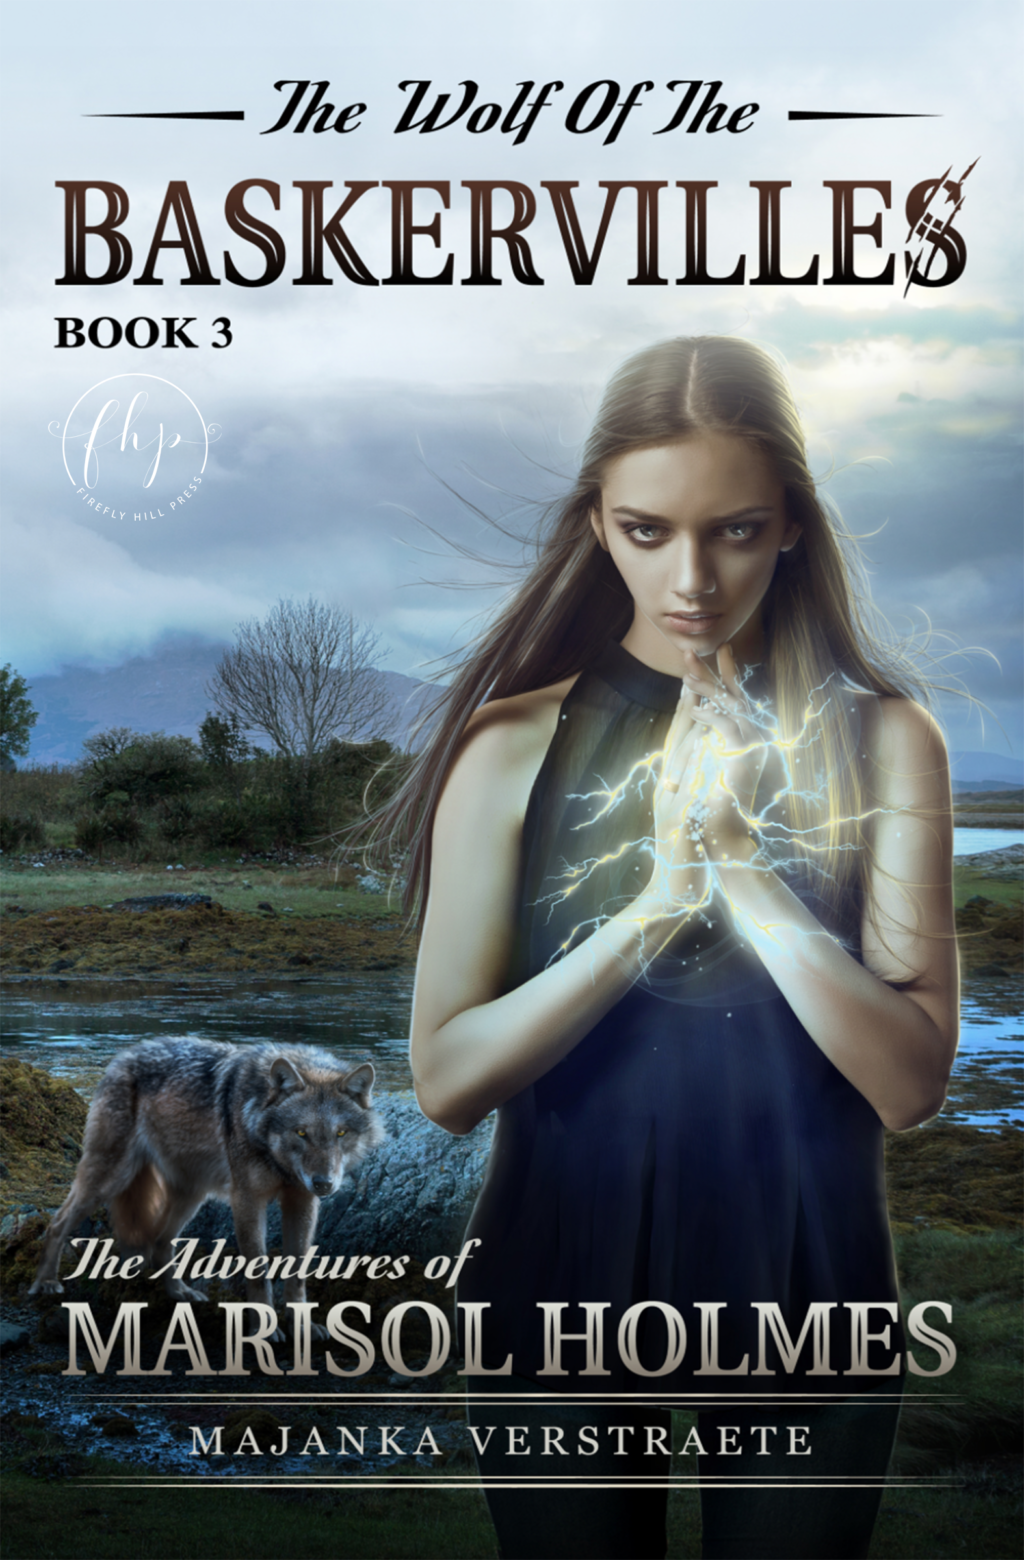 Wolf of Baskervilles (Adventures of Marisol Holmes #3) by Majanka Verstraete